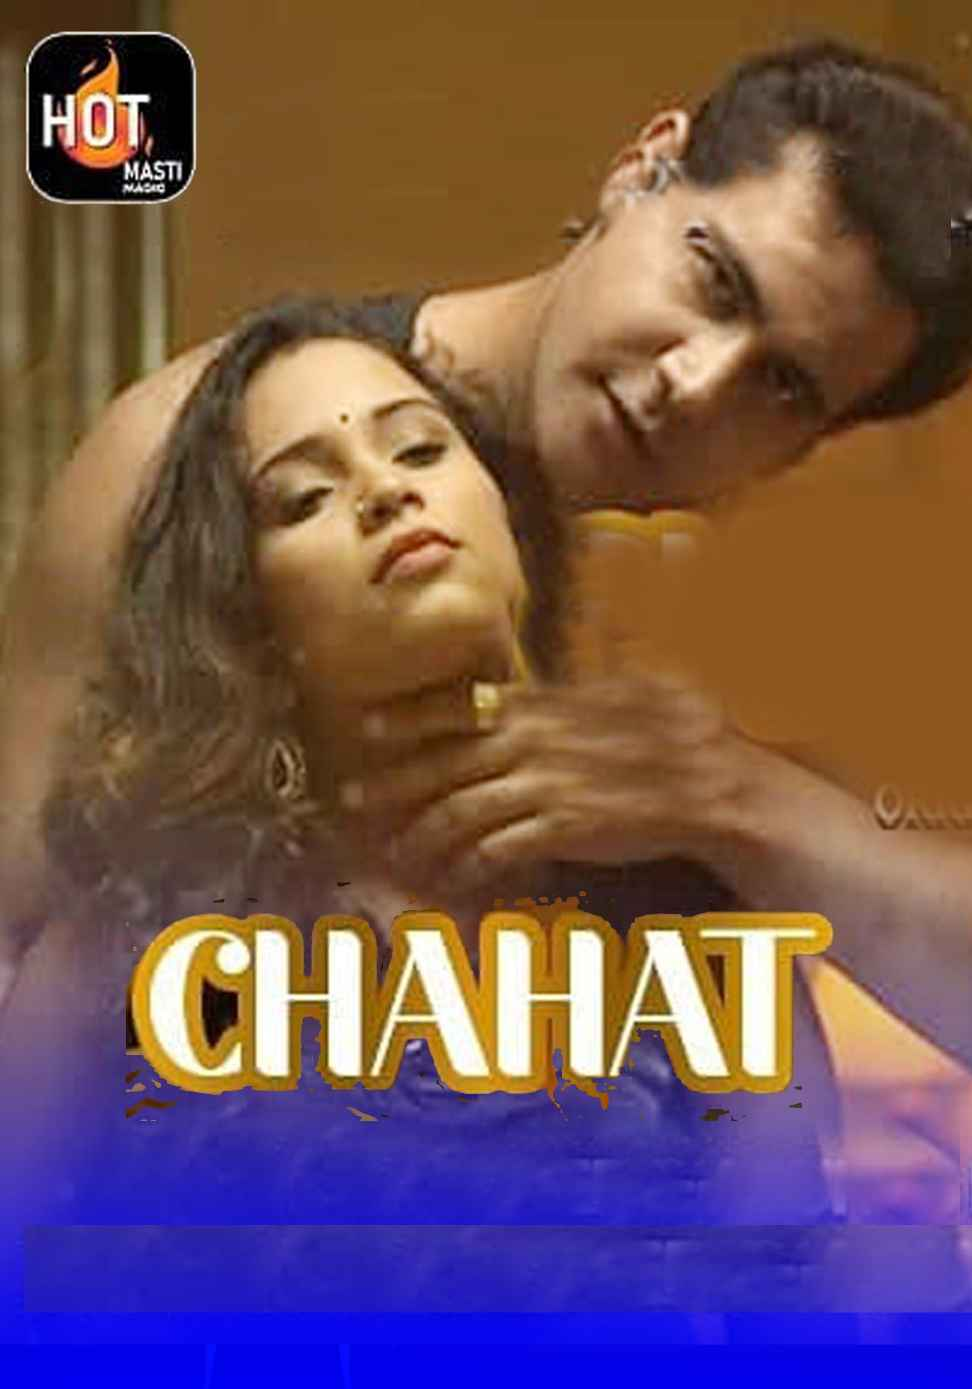 Chahat 2021 S01 (E01-02) Hotmasti Hindi Web Series 720p HDRip 430MB x264